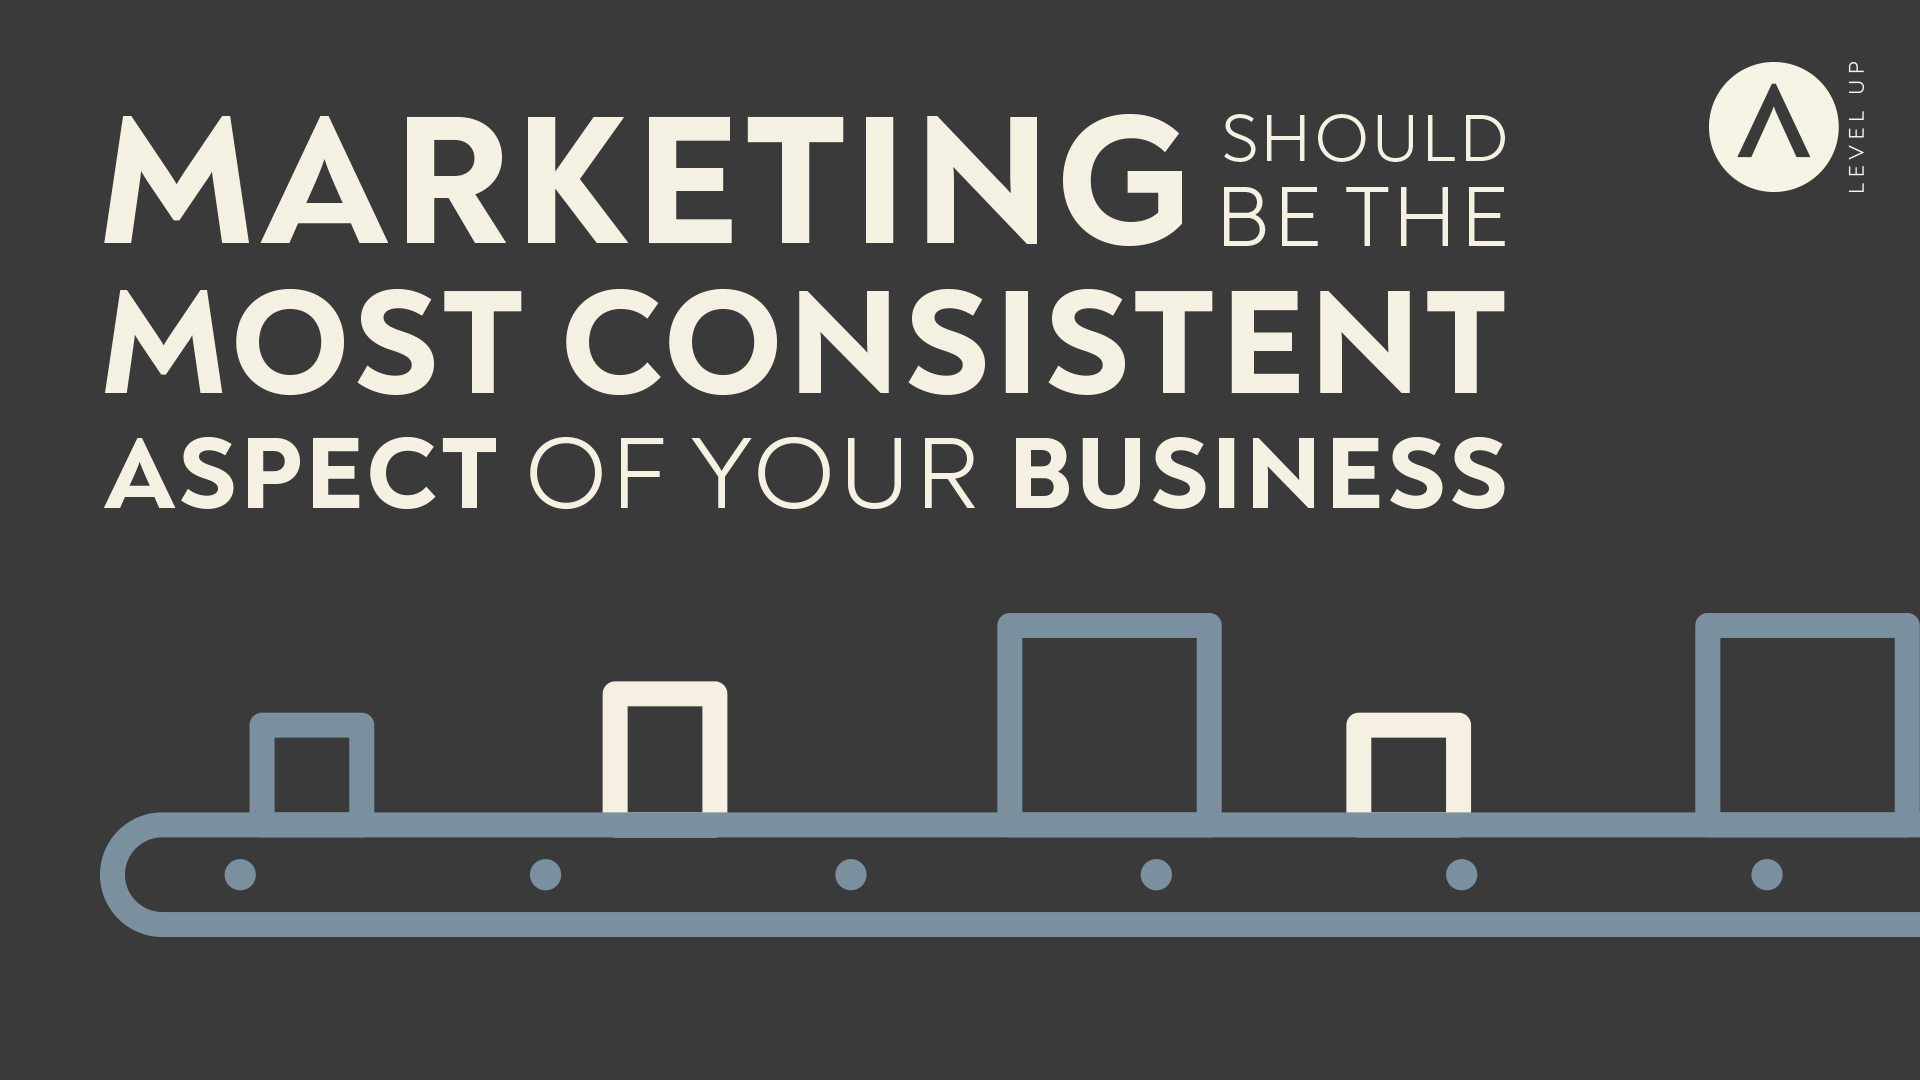 Marketing should be the most consistent part of your business.